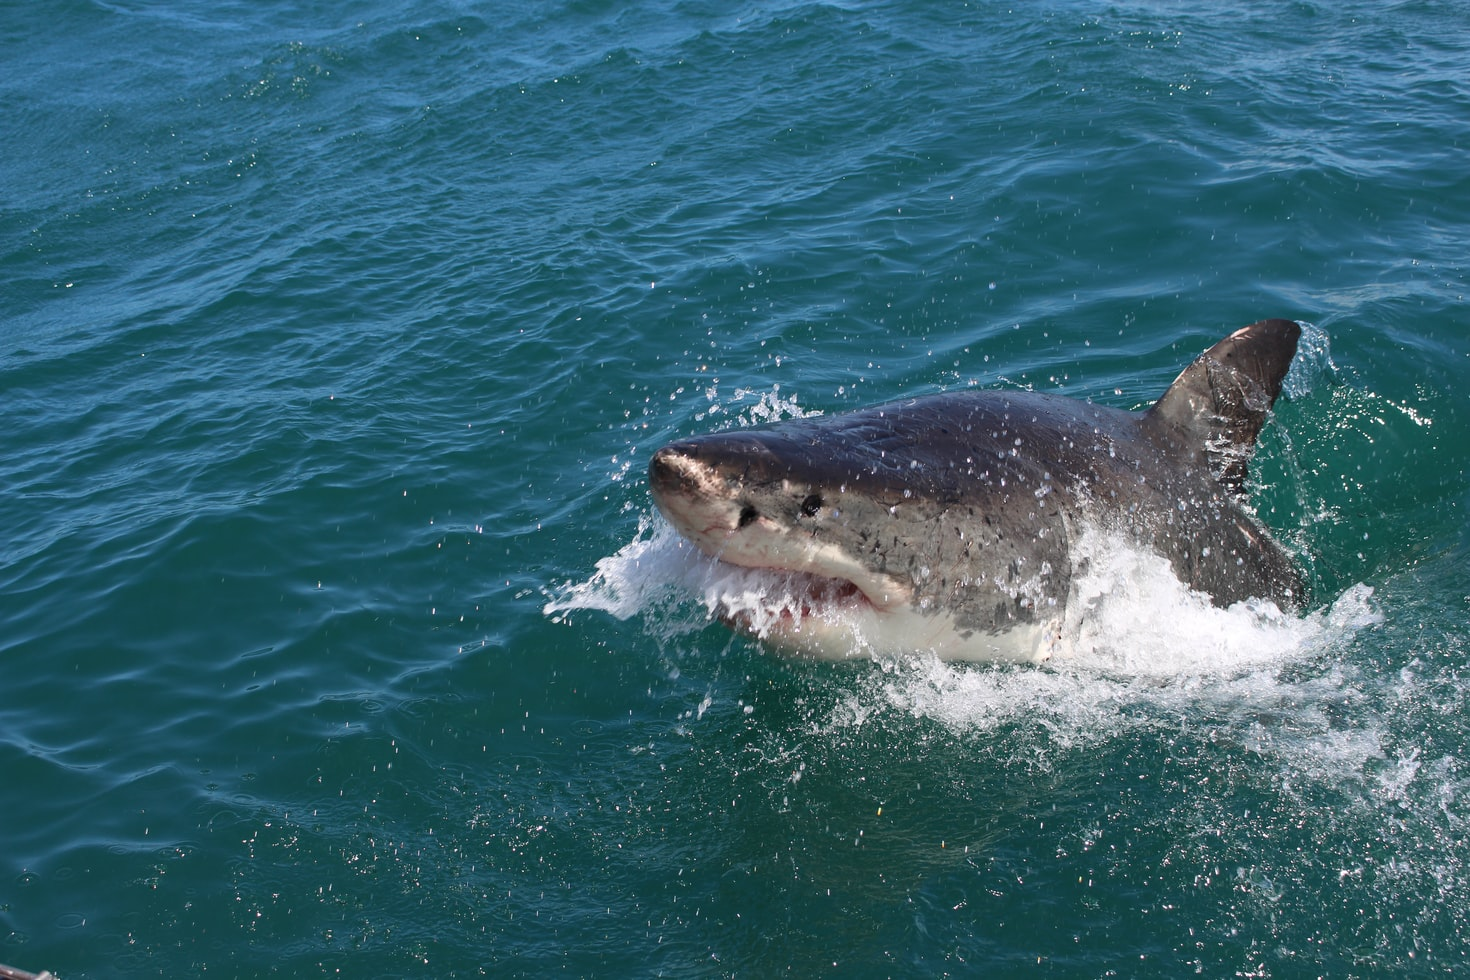 Shark attacks: On the rise or media frenzy?